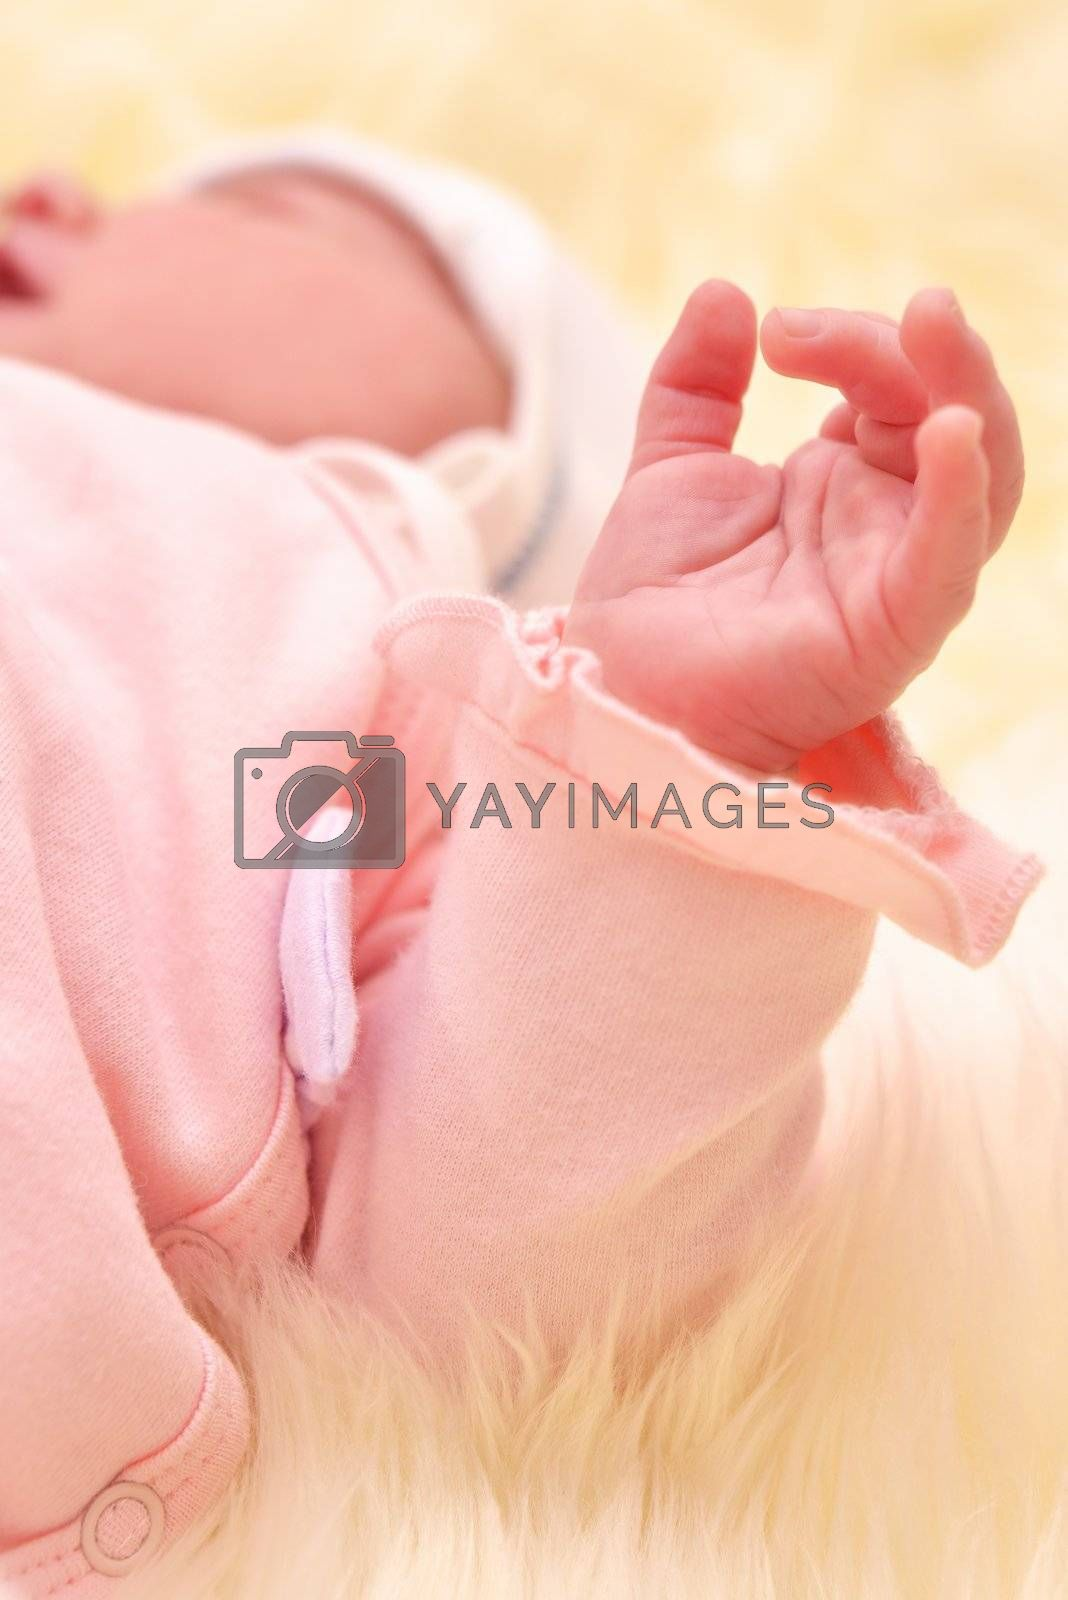 Sleeping baby arm in a pink dress with a blurred background.